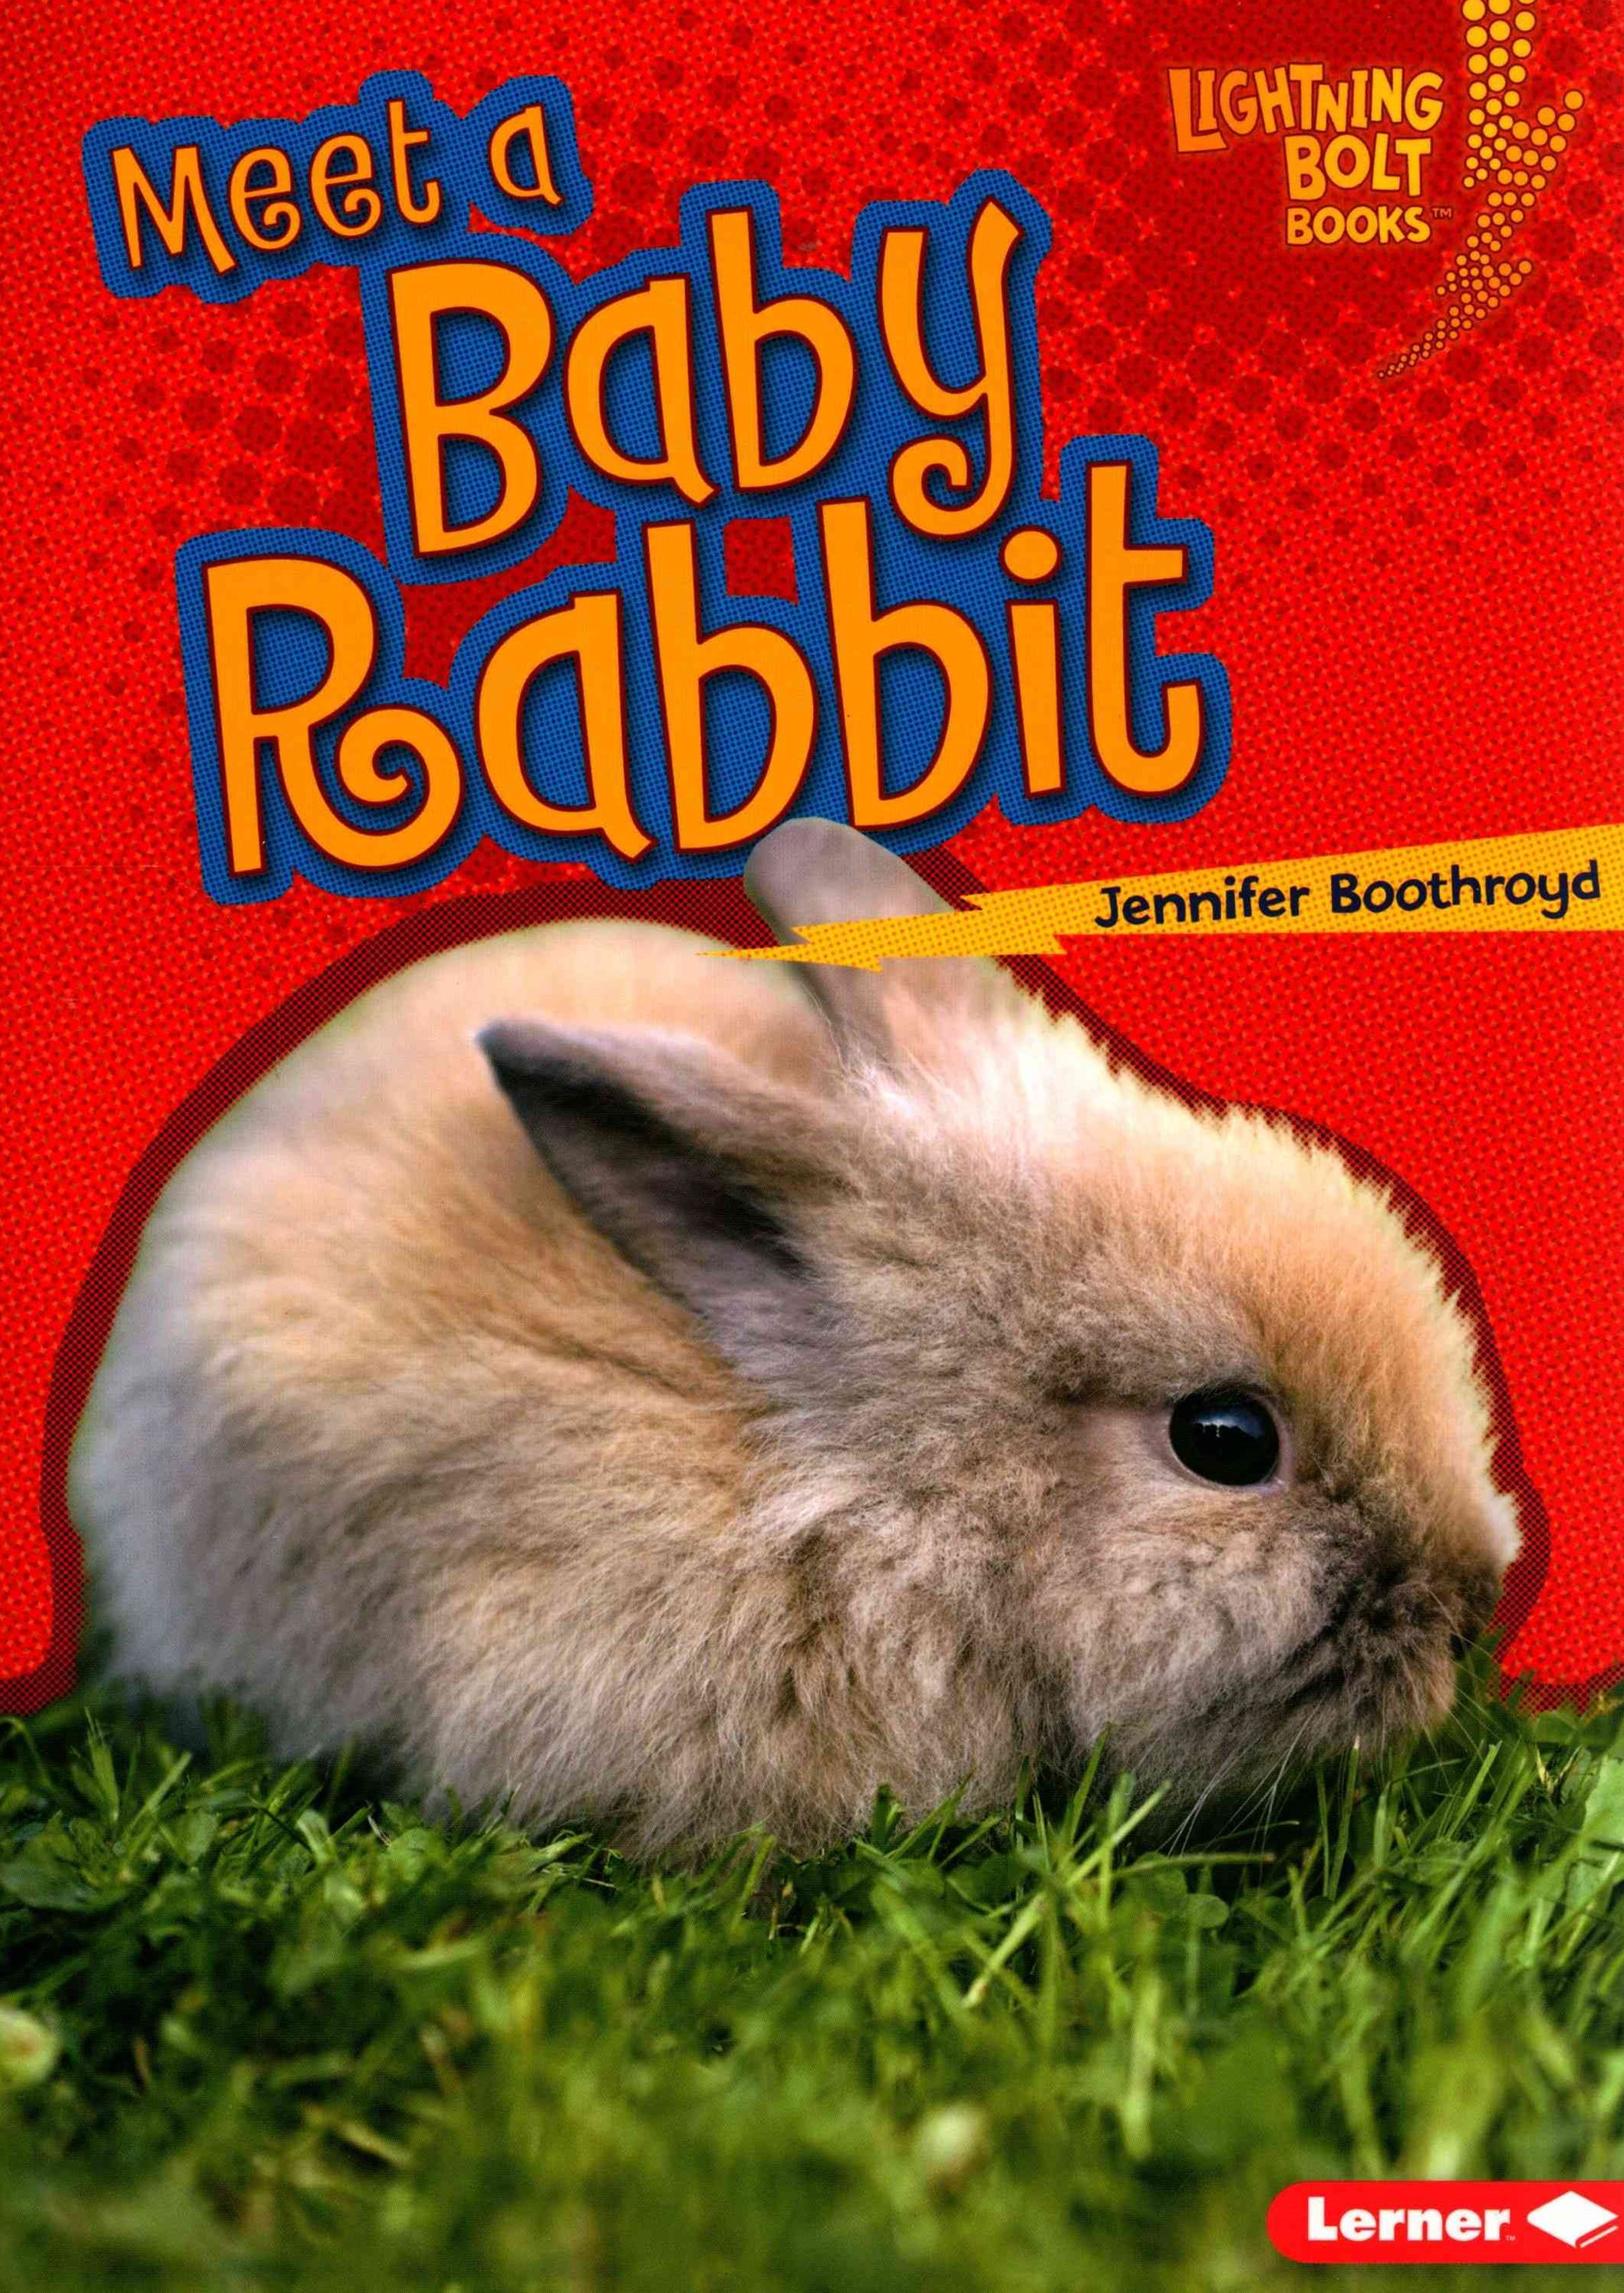 Meet a Baby Rabbit - Baby Farm Animals - Lightning Bolt